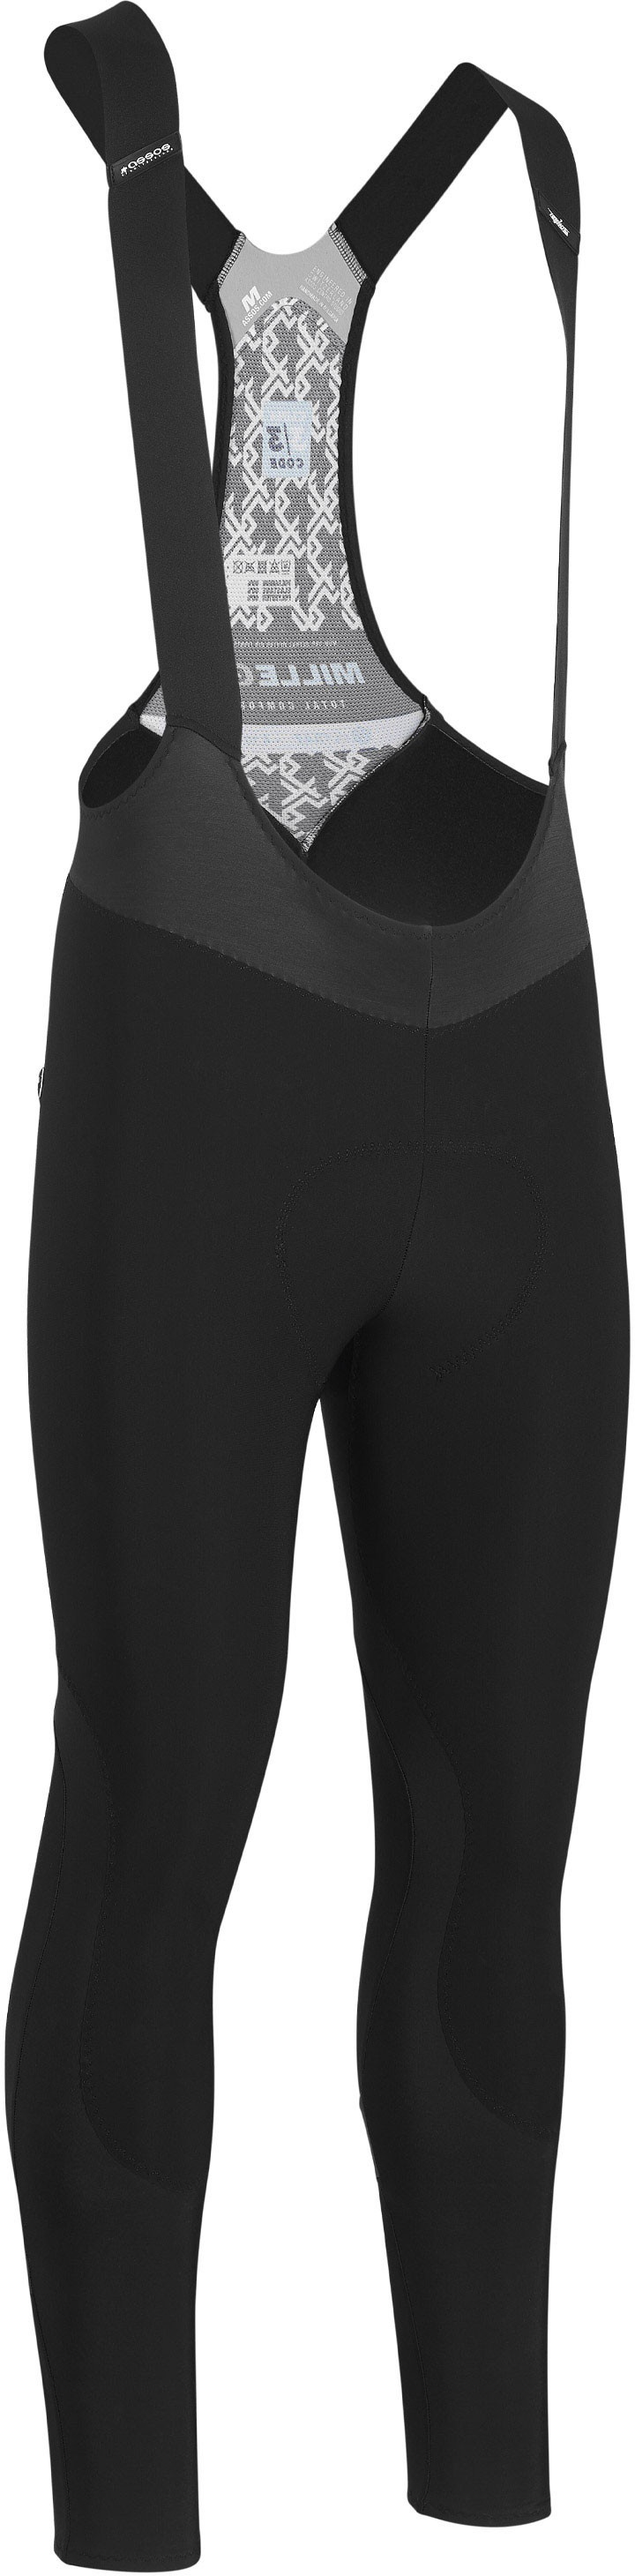 Assos MILLE GT ULTRAZ Winter Bib Tights